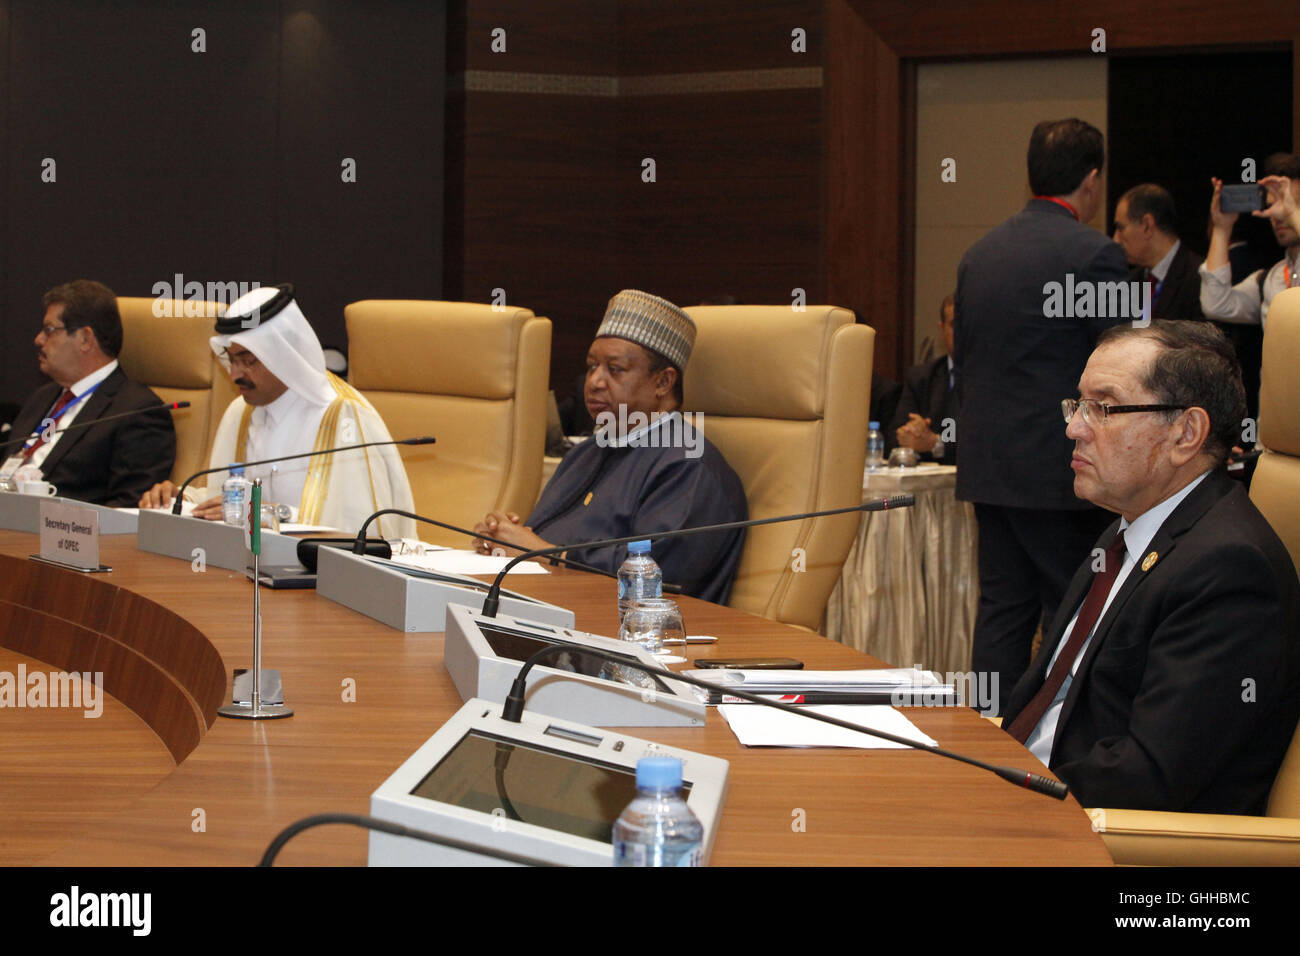 Algier. 28th Sep, 2016. Mohammed bin Saleh Al-Sada (2nd L), Qatar's energy and industry minister and the OPEC's - Stock Image